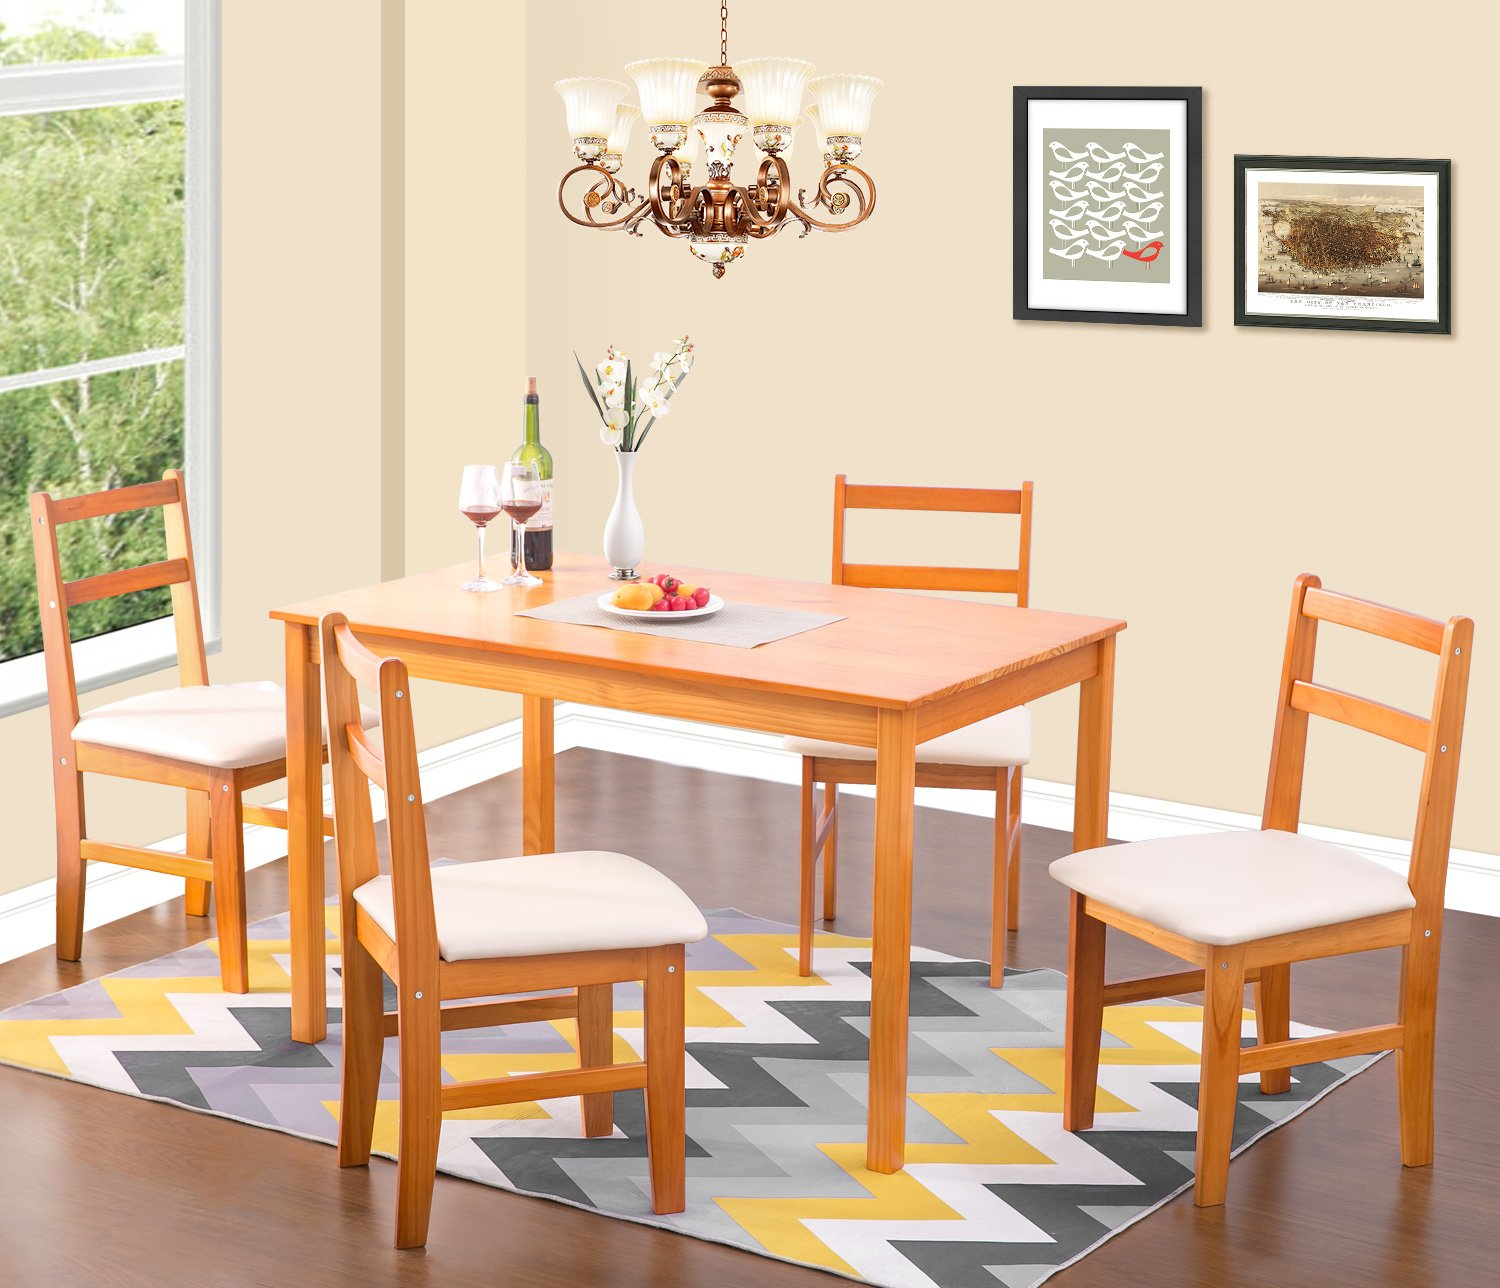 merax soild wood 5 piece dining sets 4 person dinning table and cushion seat dinning chairs. Black Bedroom Furniture Sets. Home Design Ideas